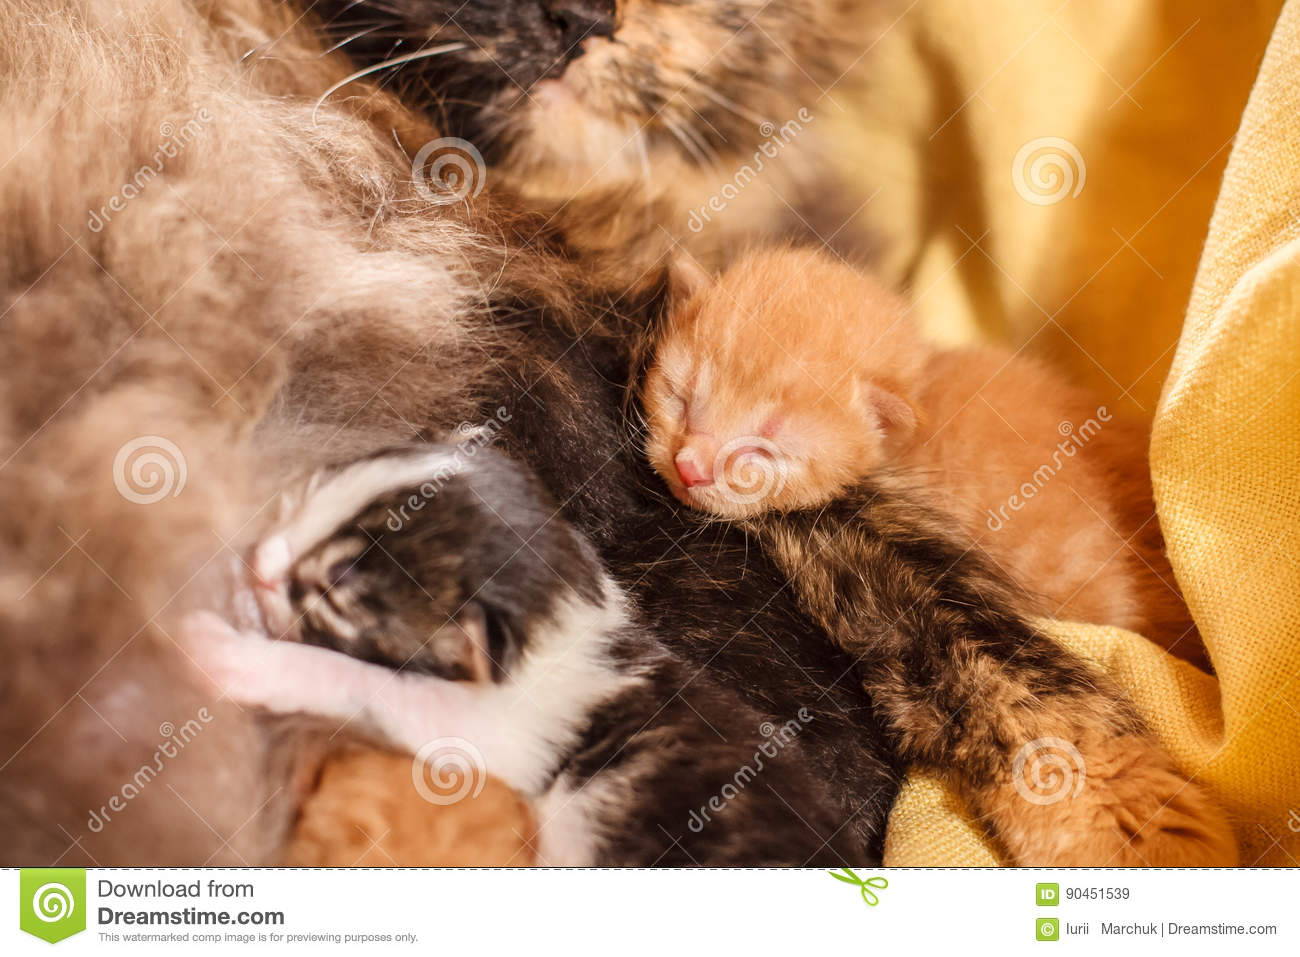 Sweet Cat Family Just New Born Kittens With A Mother Cat Red Black And White Kittens Stock Image Image Of Animal Claw 90451539